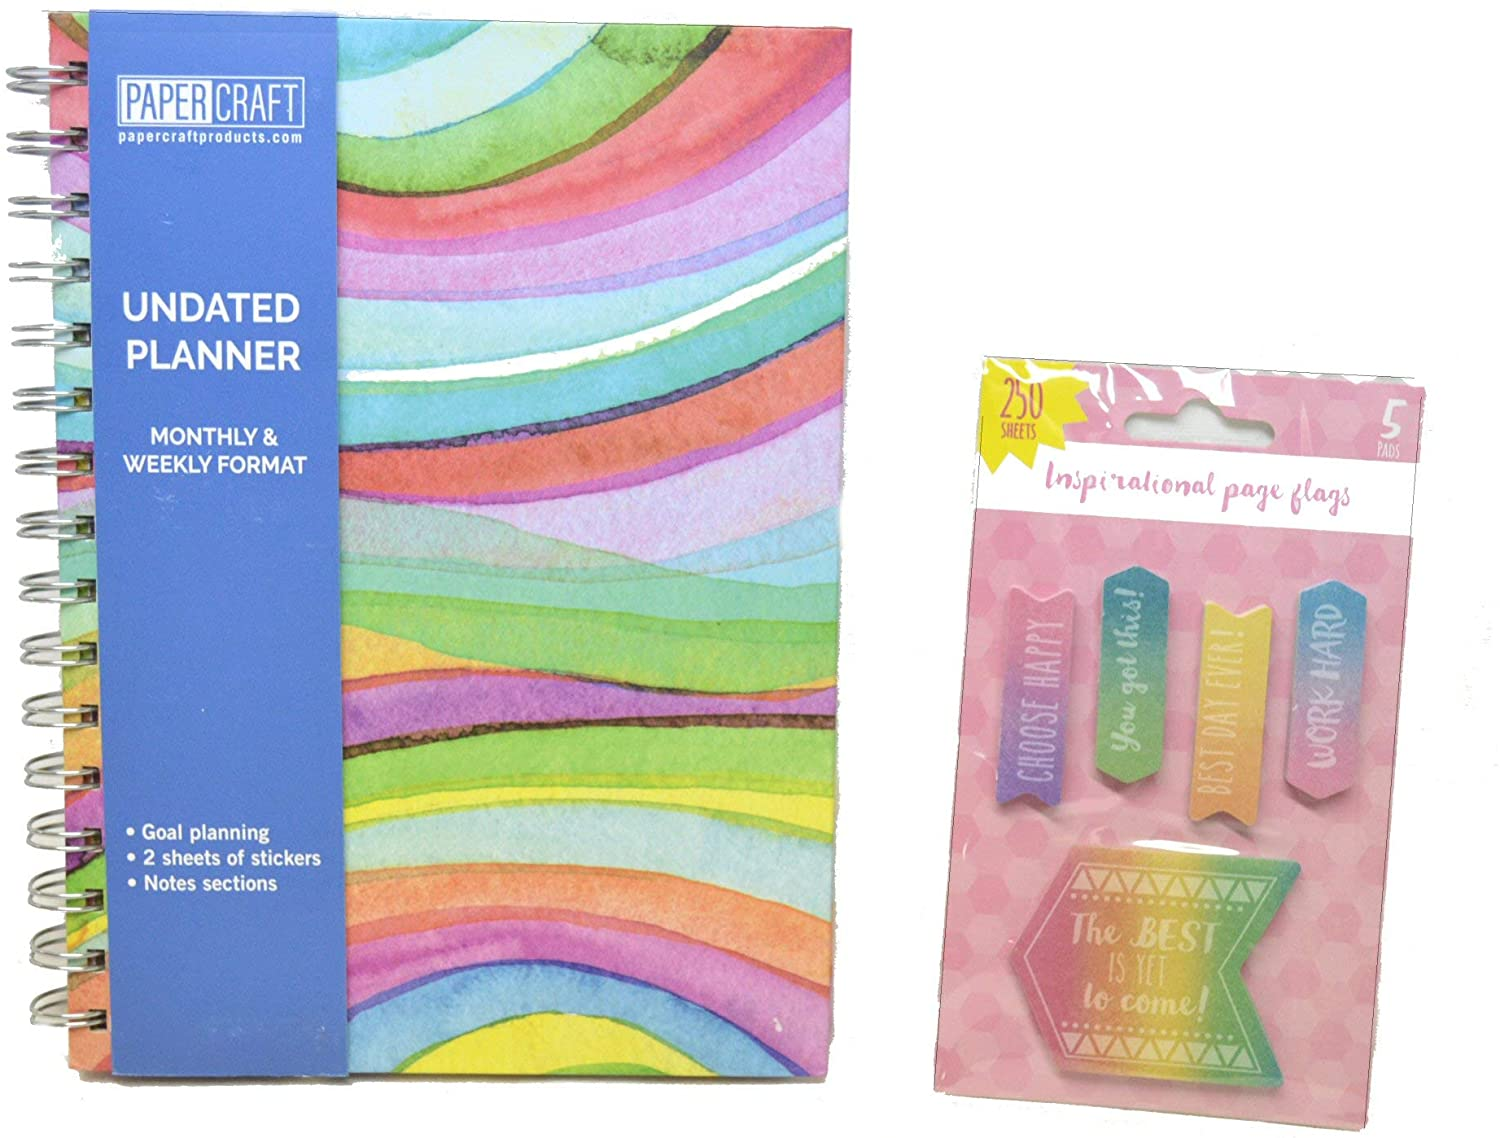 Monthly and Weekly Planner Bundle   5-1/2 by 8 Inches   Undated with Stickers and Page Flags   Rainbow Waves Design